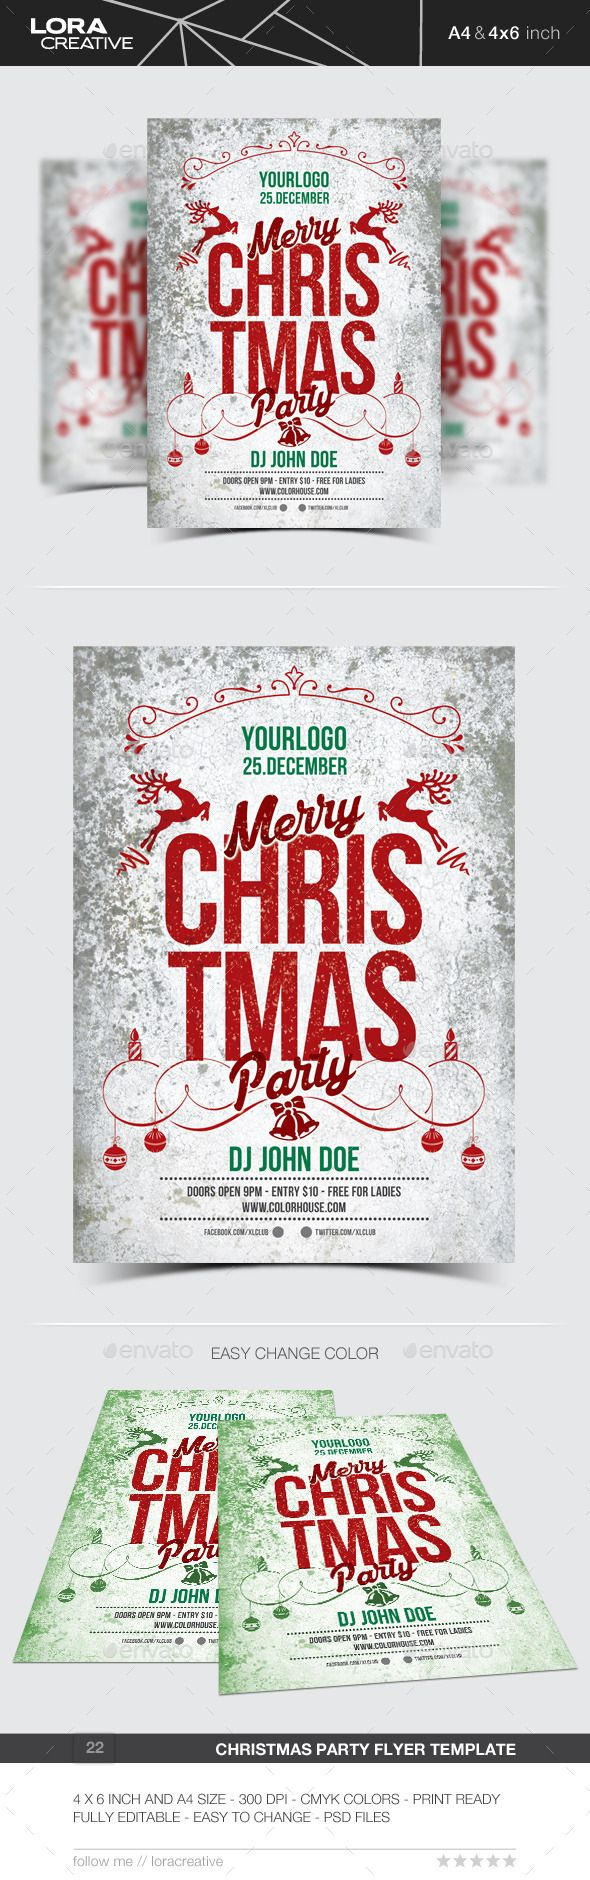 Free christmas poster design templates - Christmas Flyer Poster Invitation 22